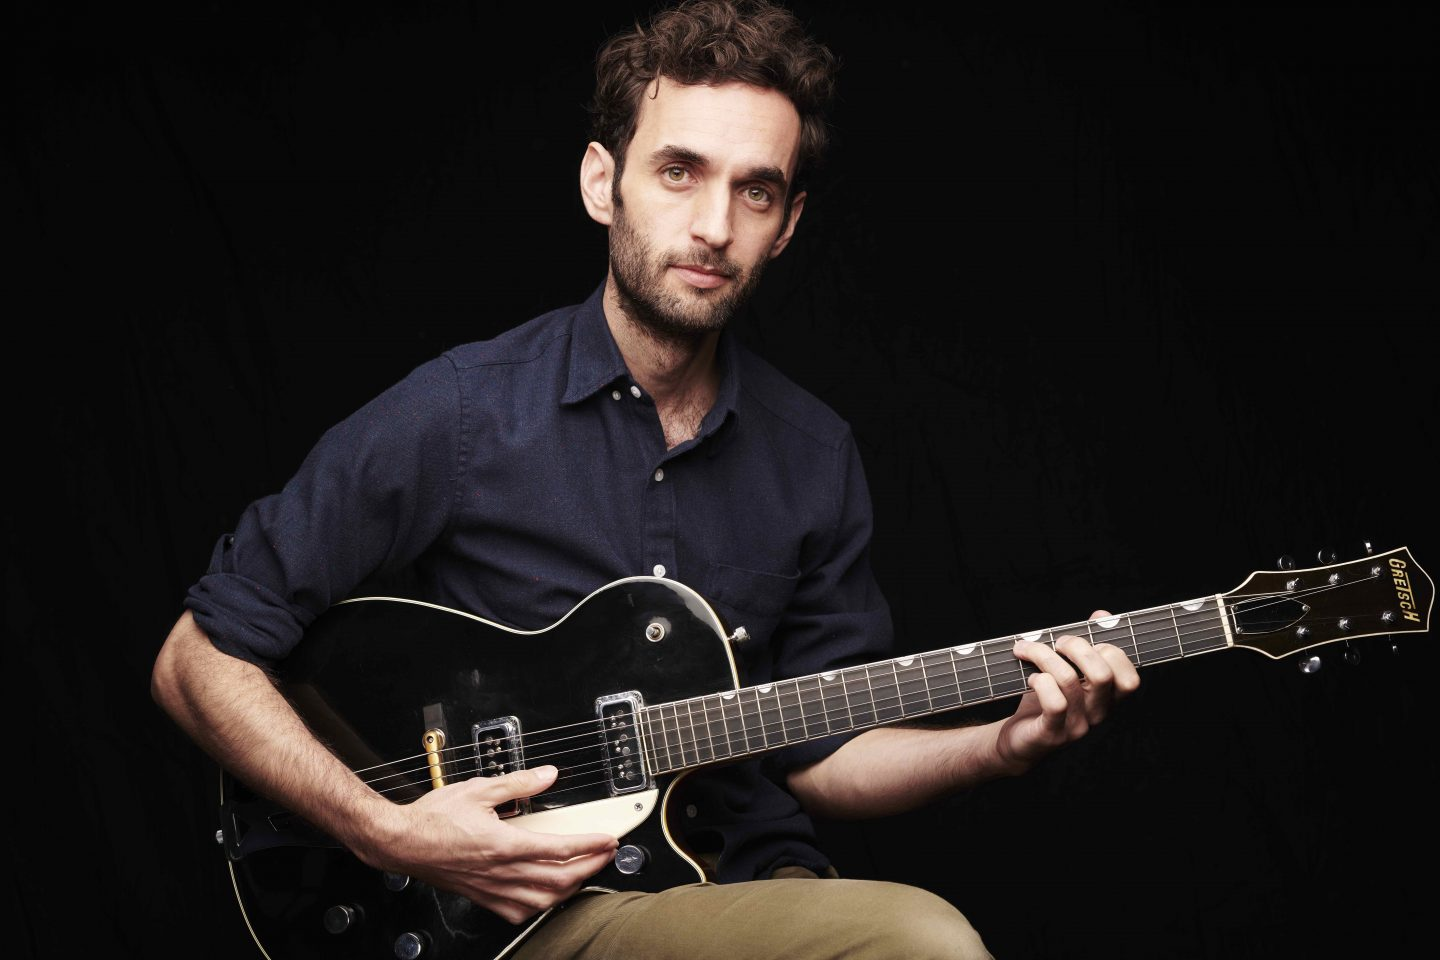 Julian Lage, a faculty member in the School of Jazz and Contemporary Music, was nominated for Best Improvised Solo for his album